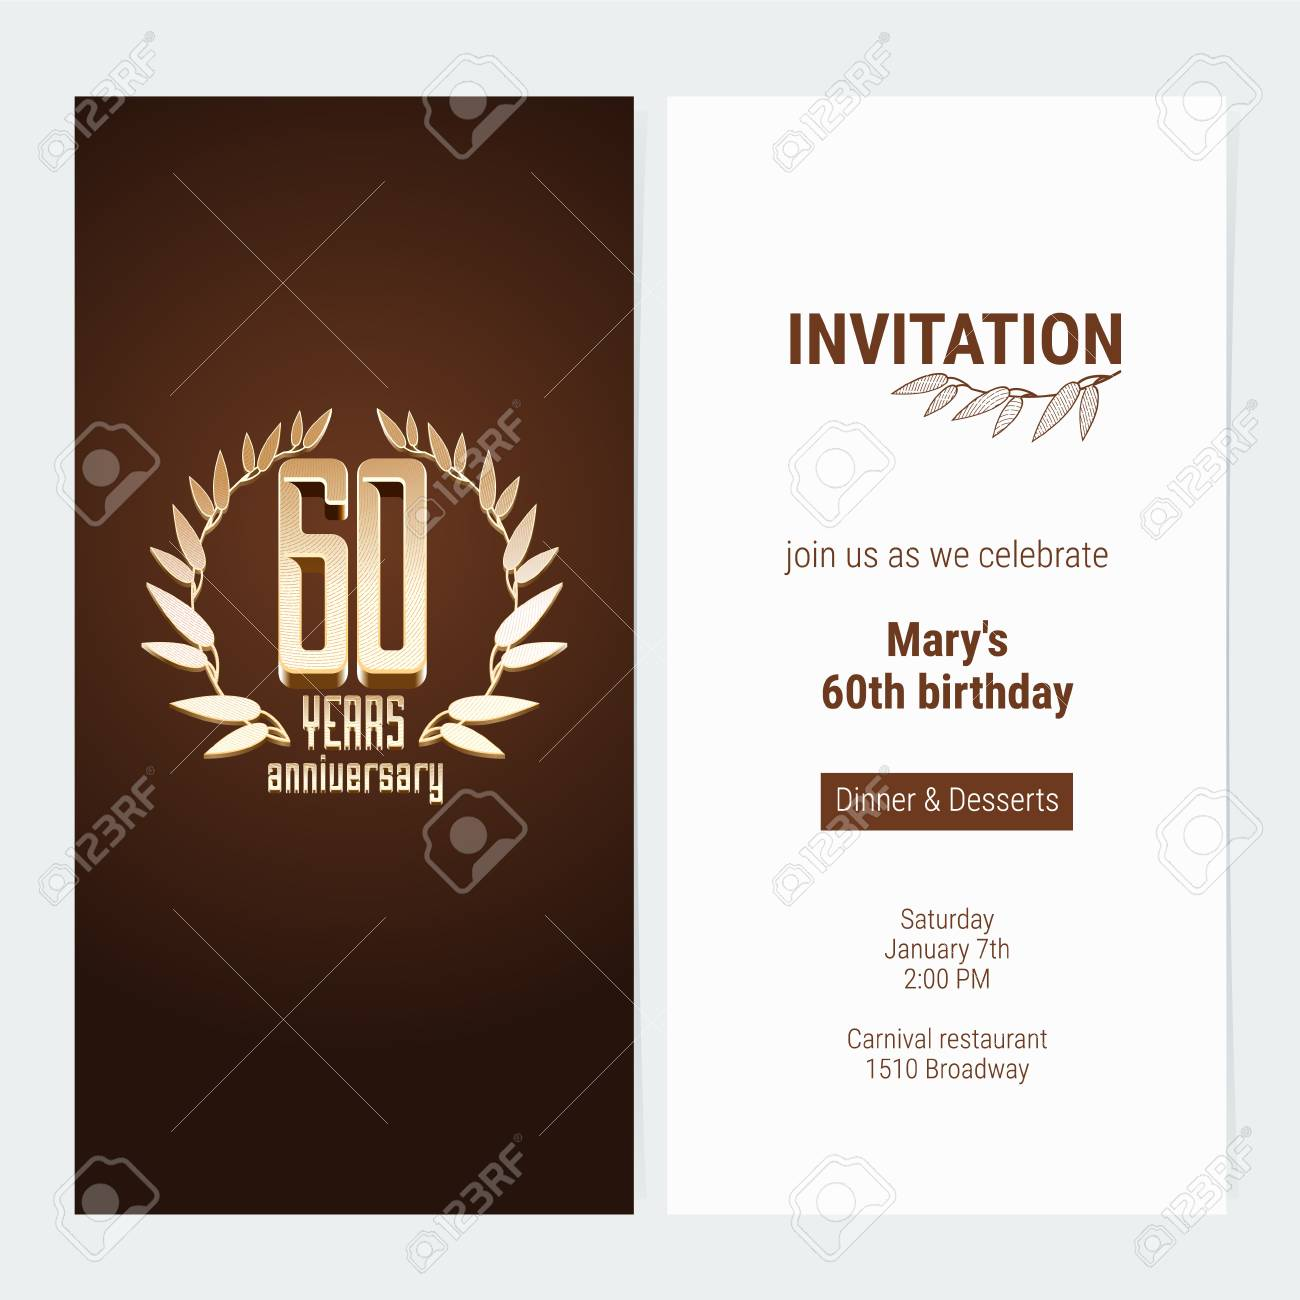 60 Years Anniversary Invitation To Celebrate The Event Vector ...